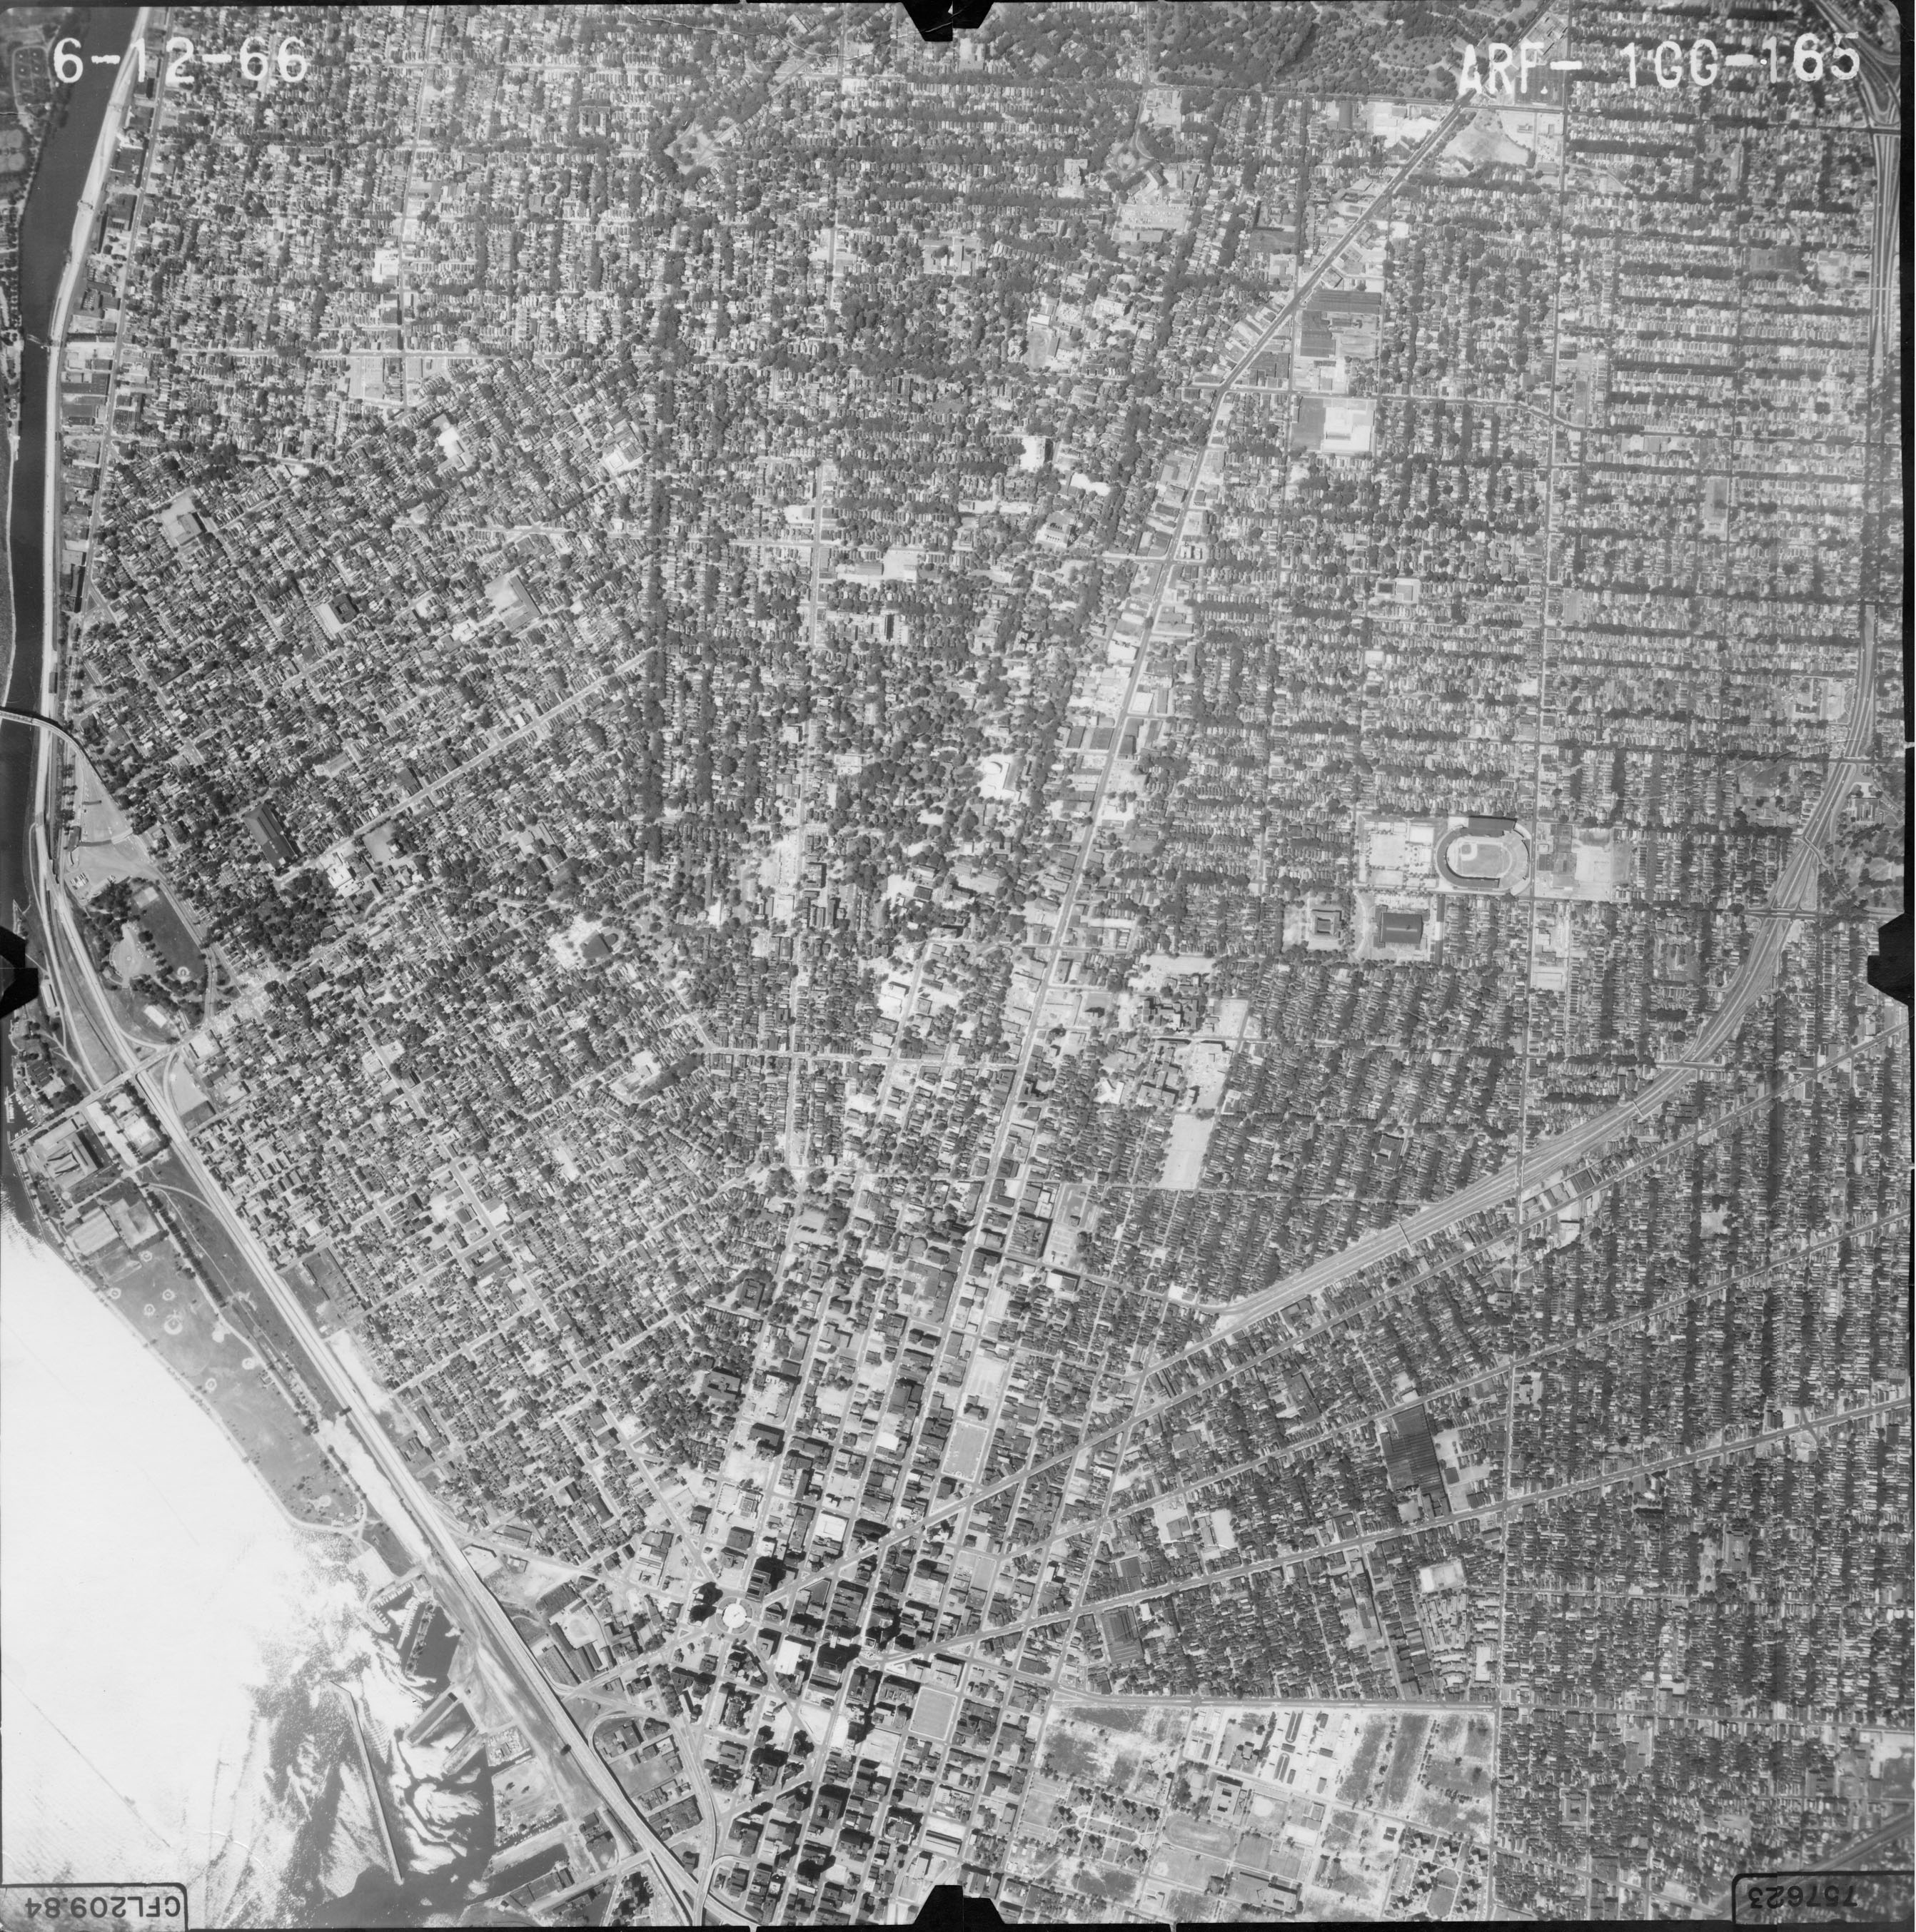 Aerial photo showing Downtown Buffalo in 1966